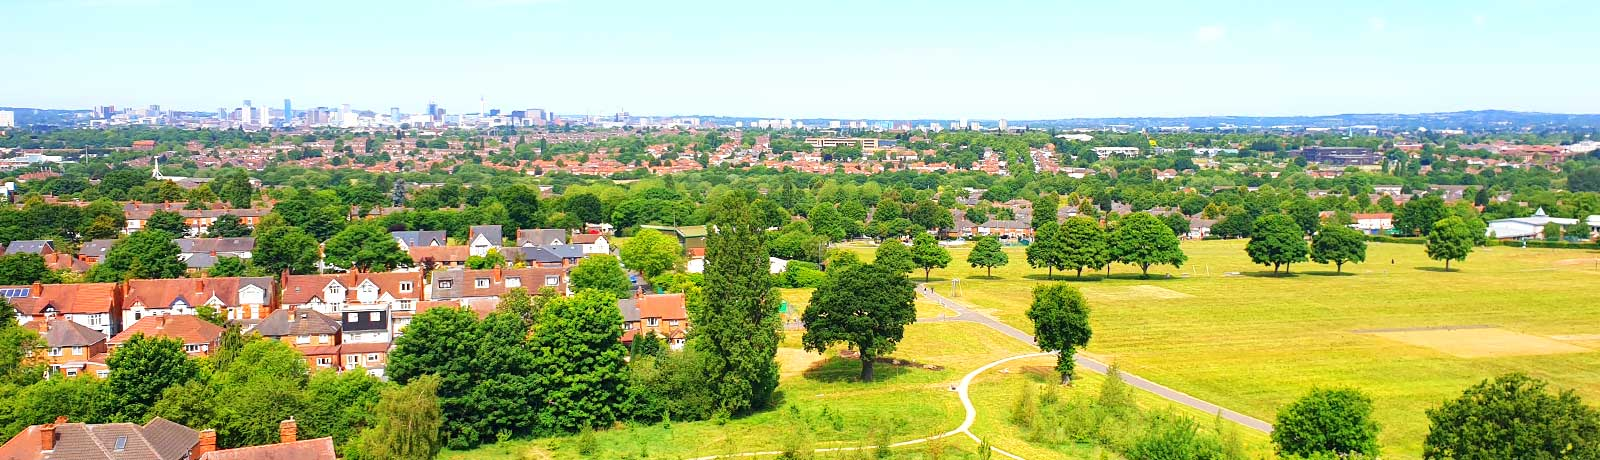 For recreational activities, Sheldon Country Park is just 2 miles away, which covers an area of over 300 acres featuring a nature trail and playground.